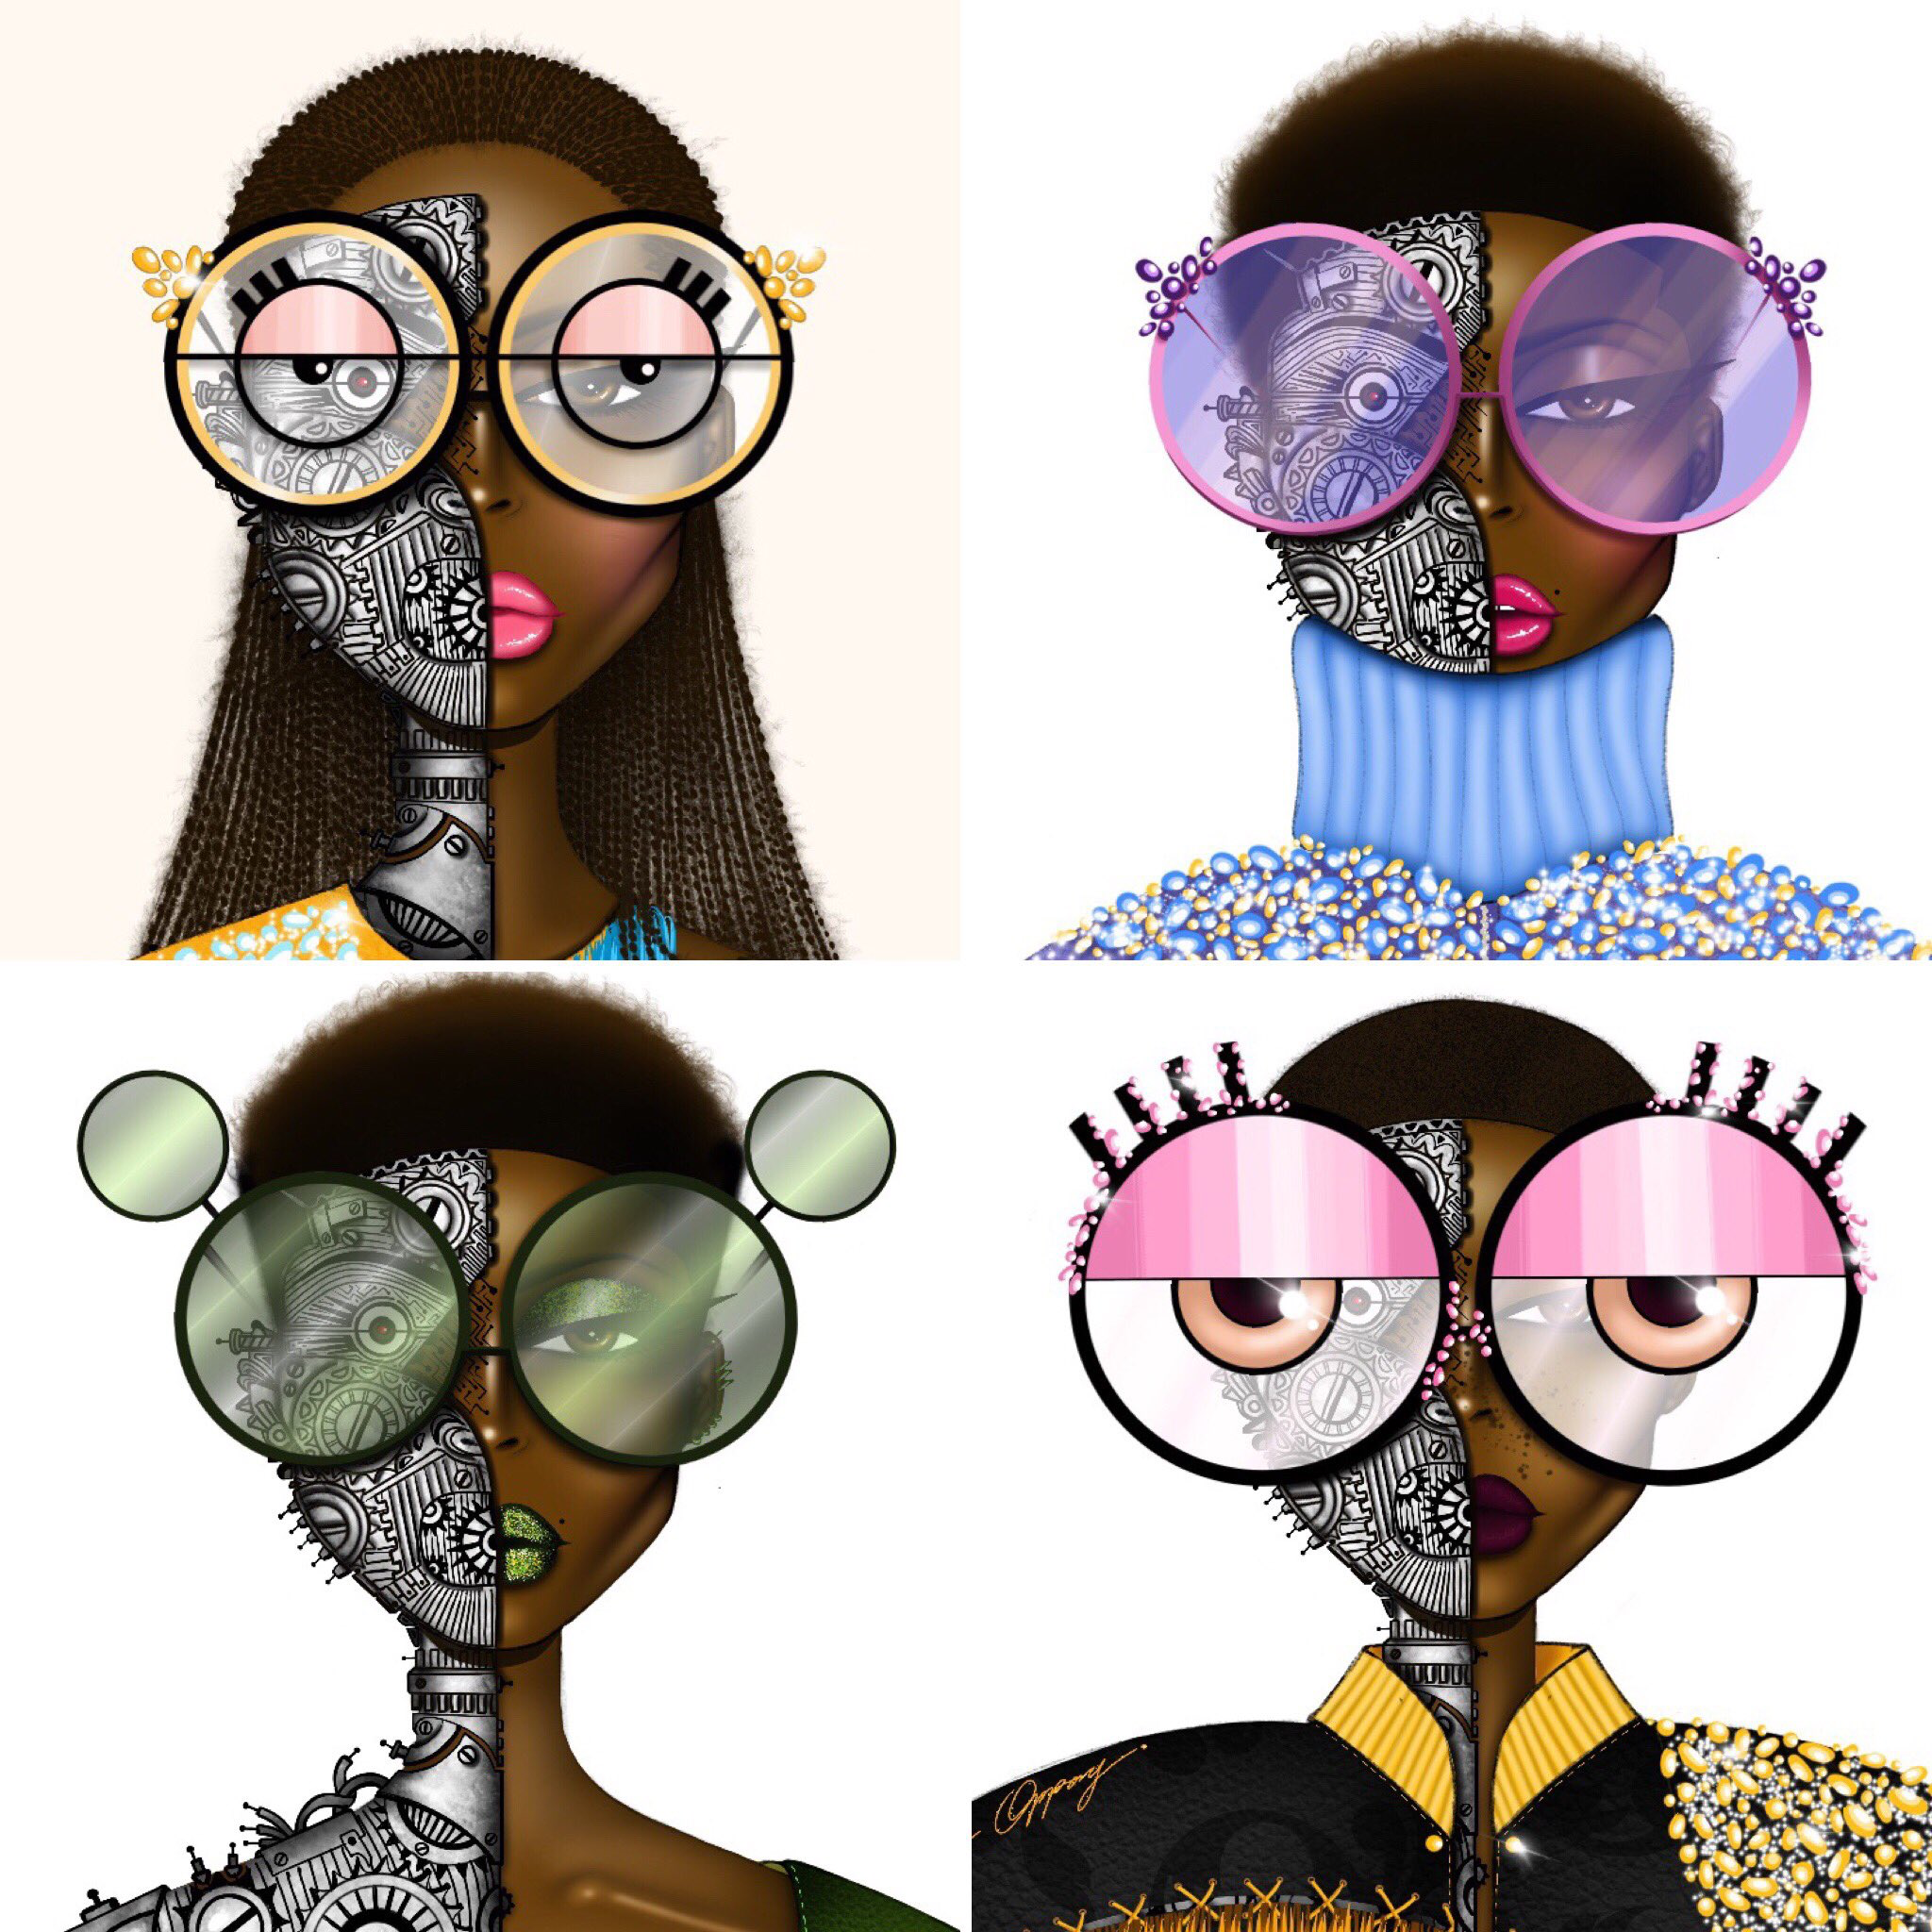 Modern Urban Black Girl: Pin By Keely James On Celebrate Me Black! (With Images